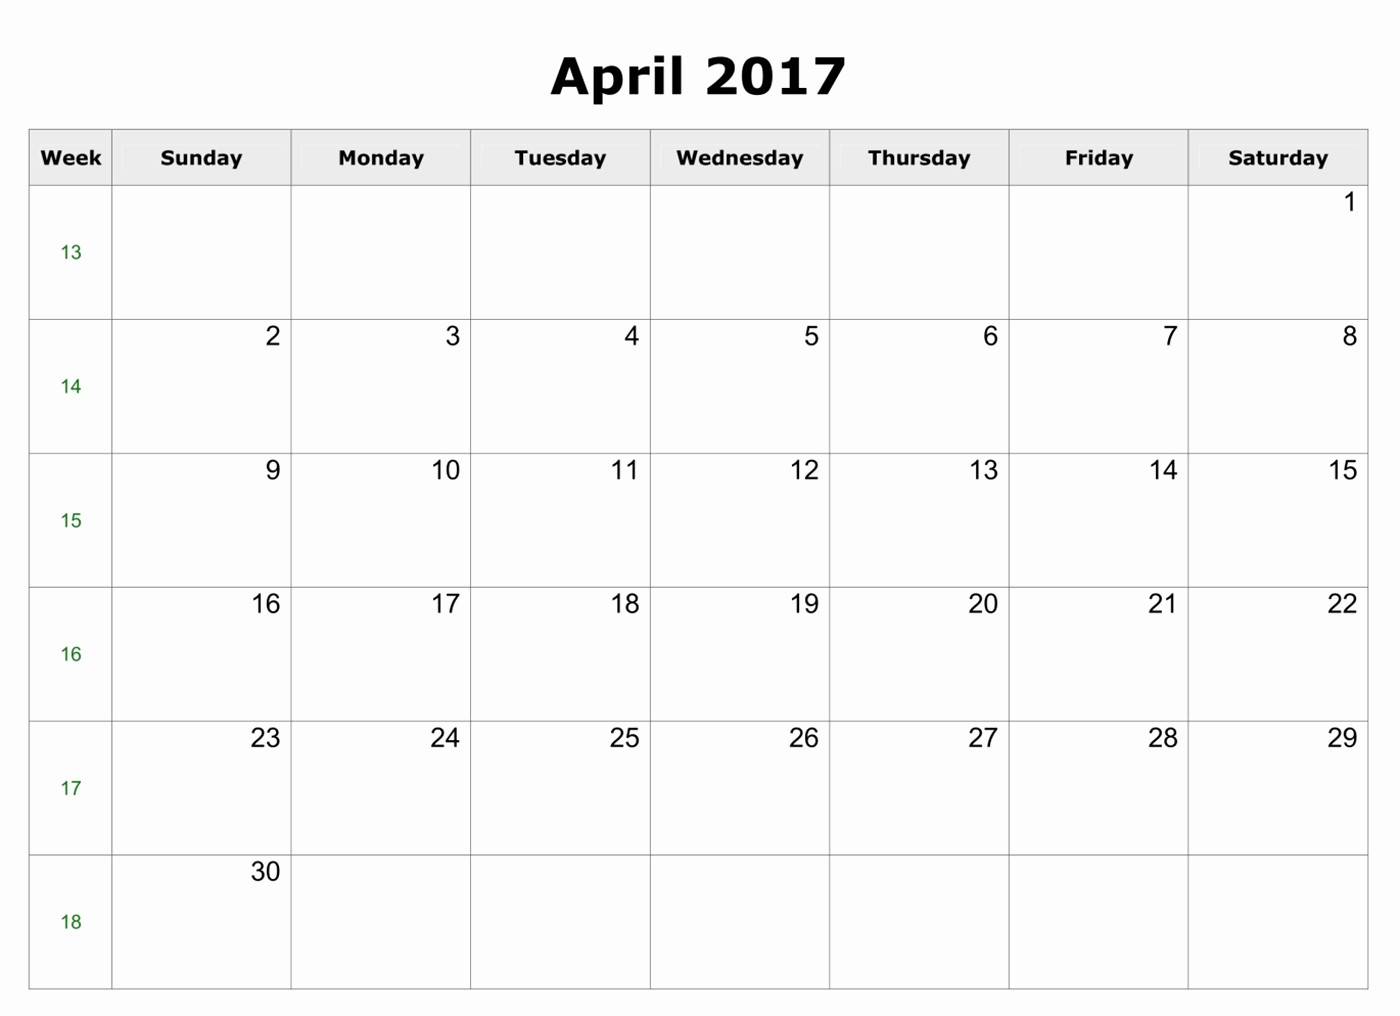 Excel 2017 Calendar with Holidays Luxury April 2017 Excel Calendar April2017 Excelcalendar